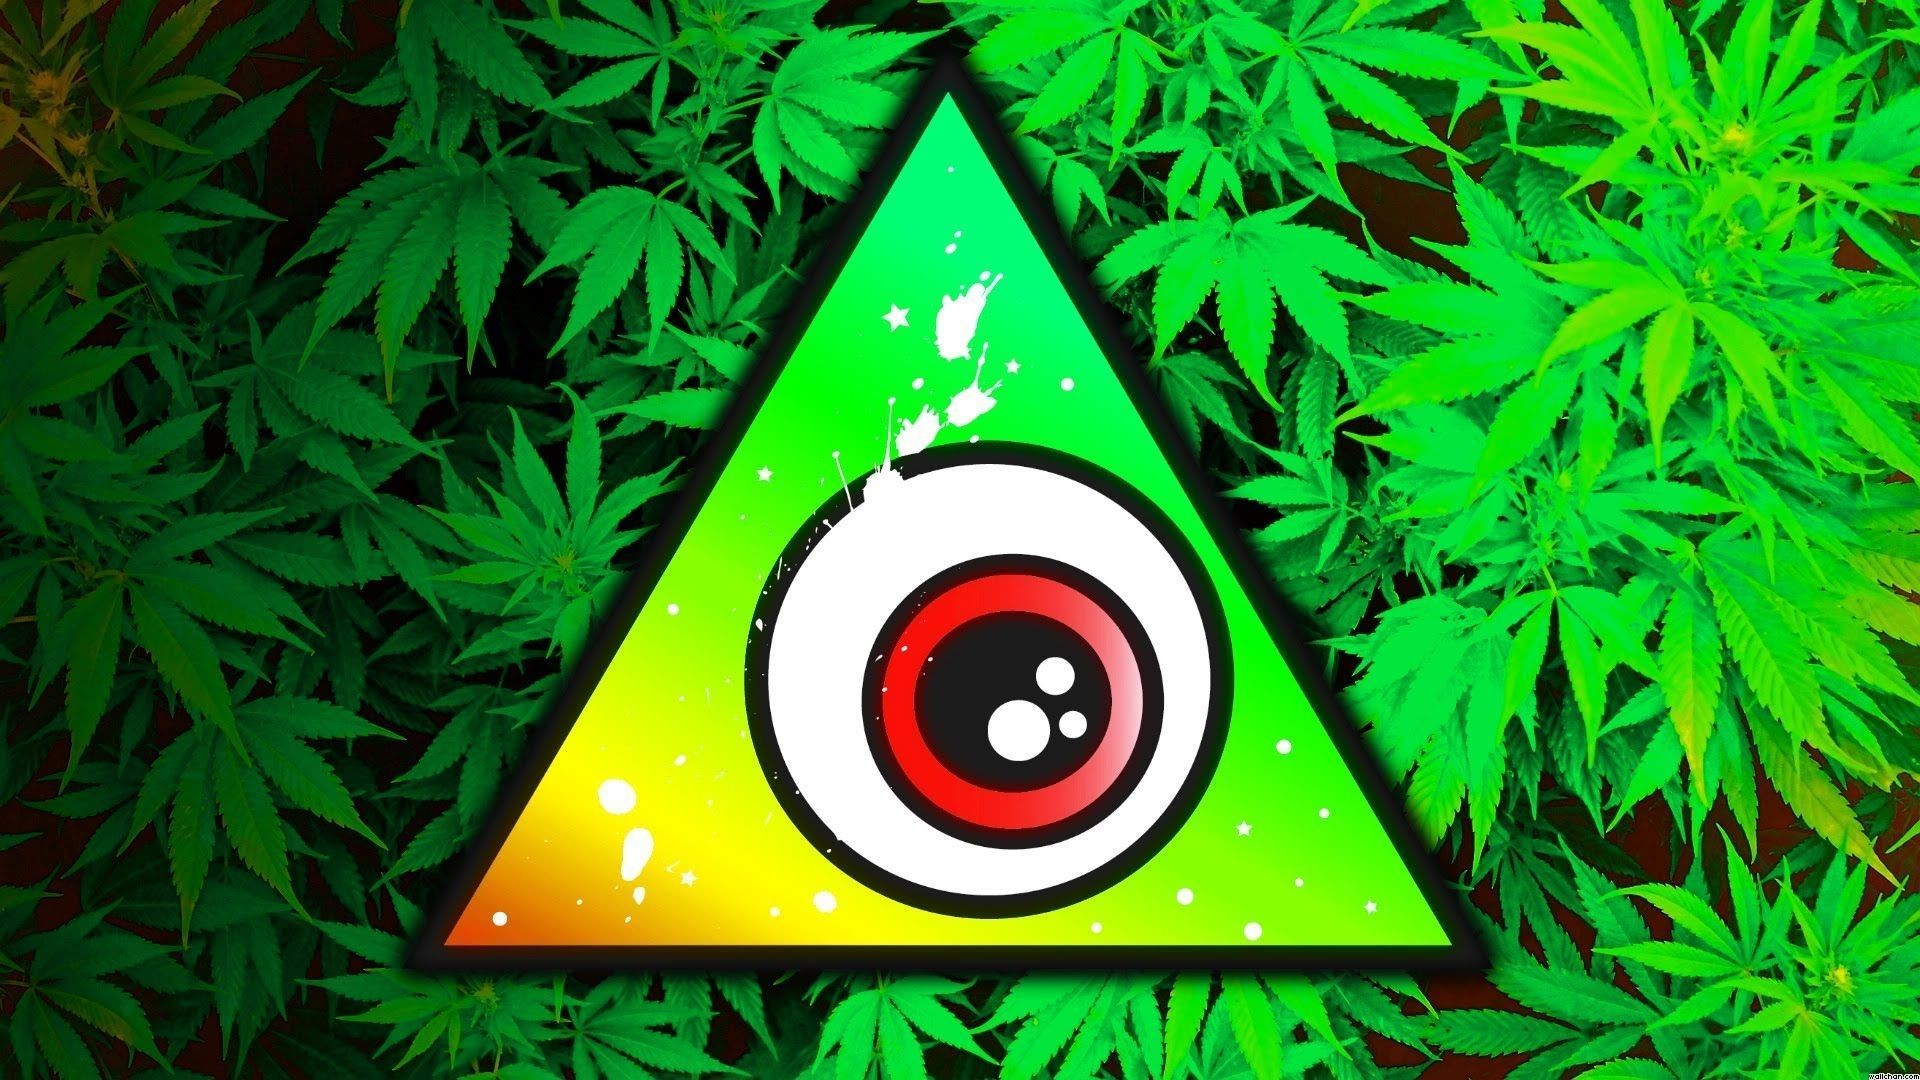 Stoner Wallpapers Hd 55 Images